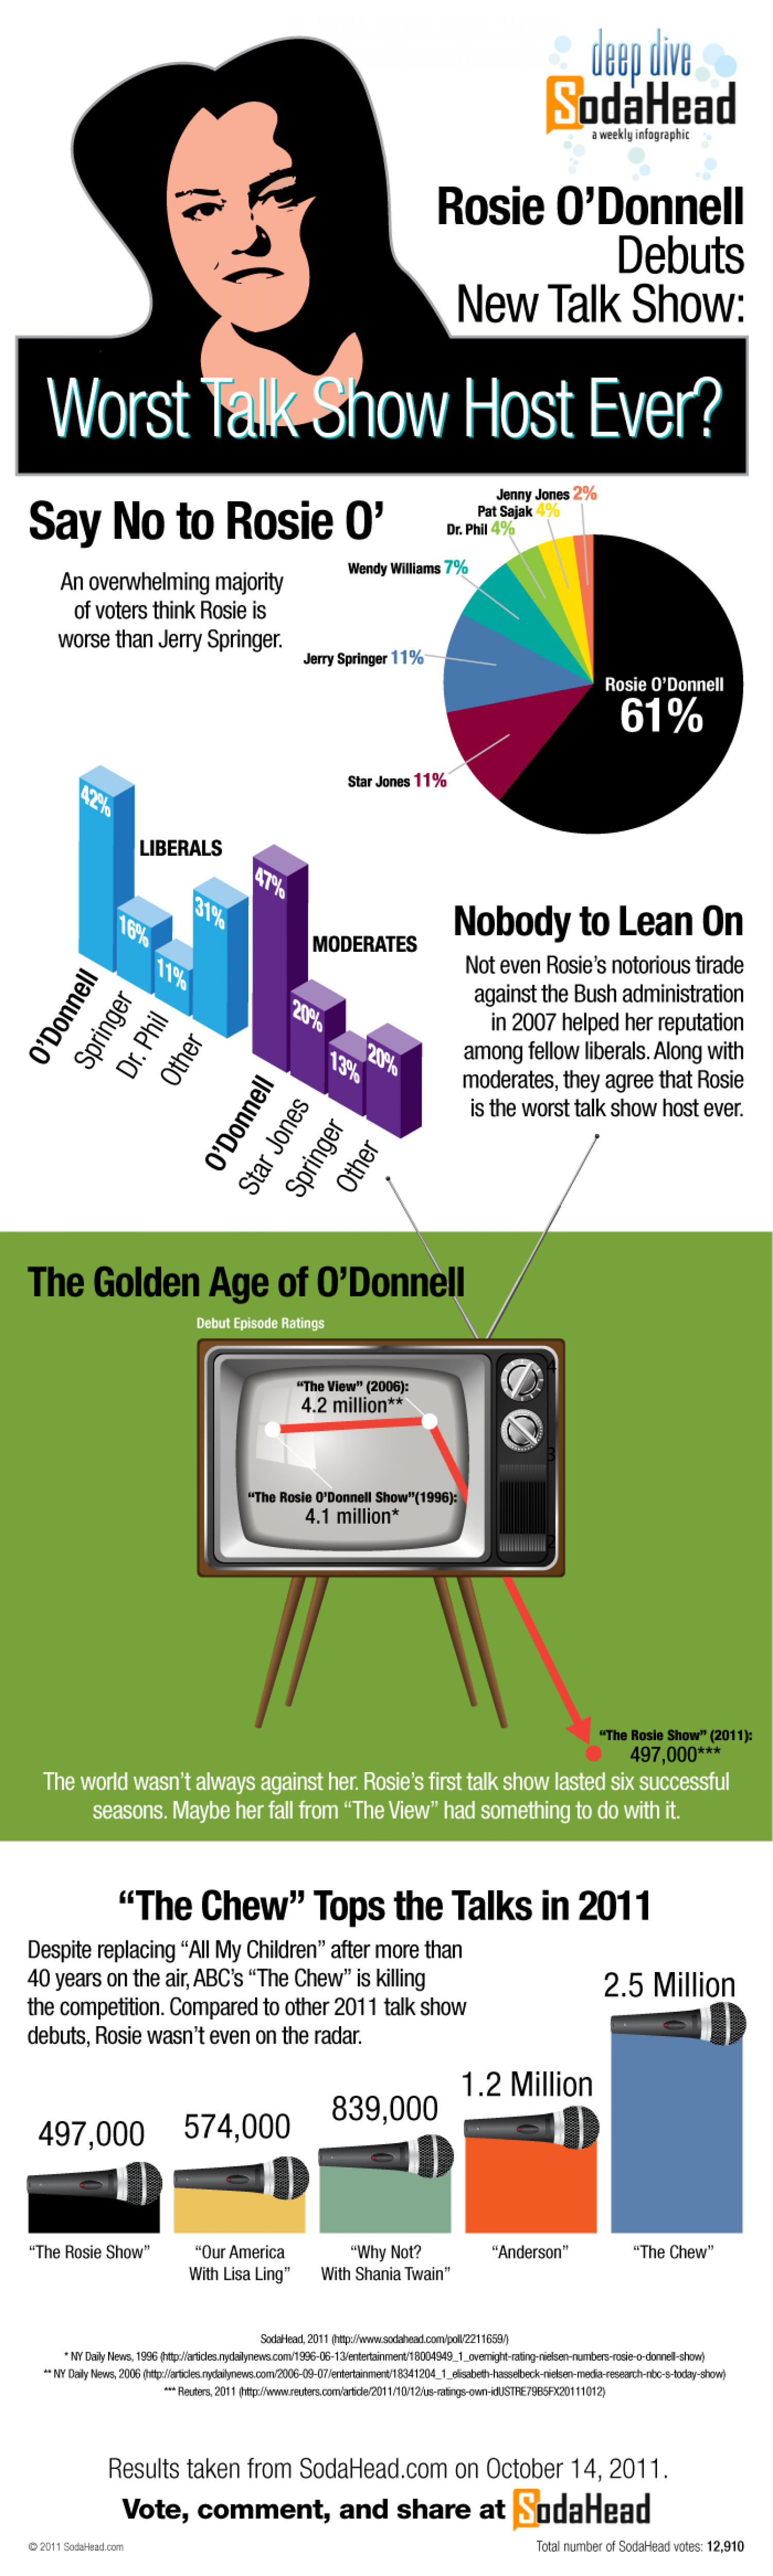 Rosie O'Donnell Hosts New Talk Show Infographic